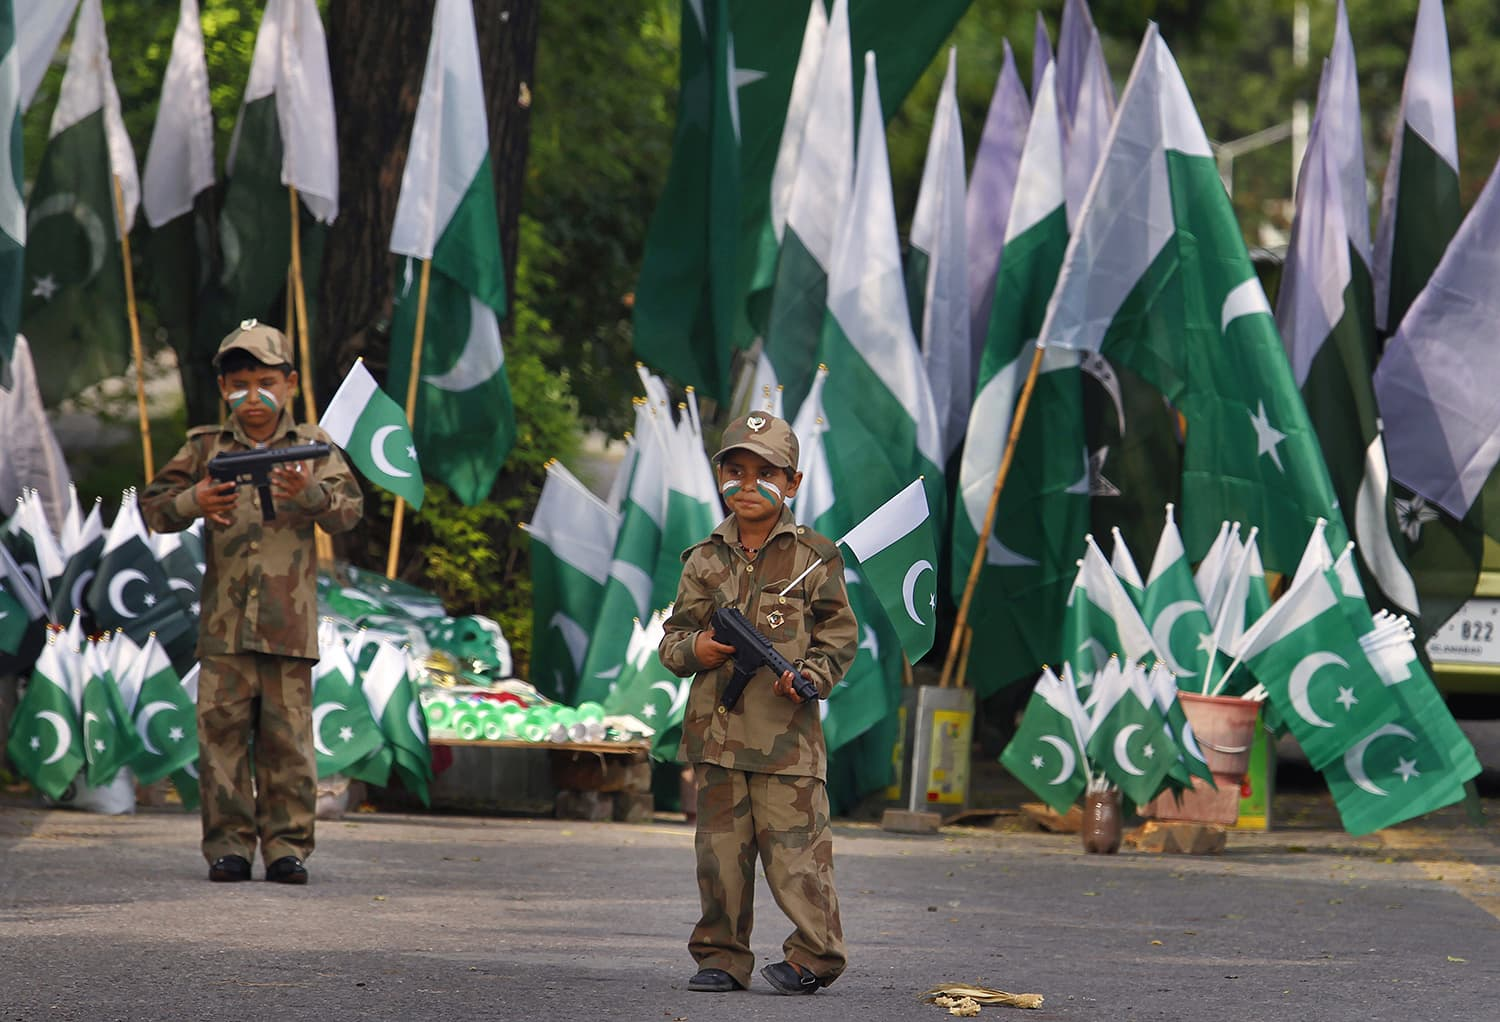 14th August Pakistan's Independence Day - The real meaning of Azadi